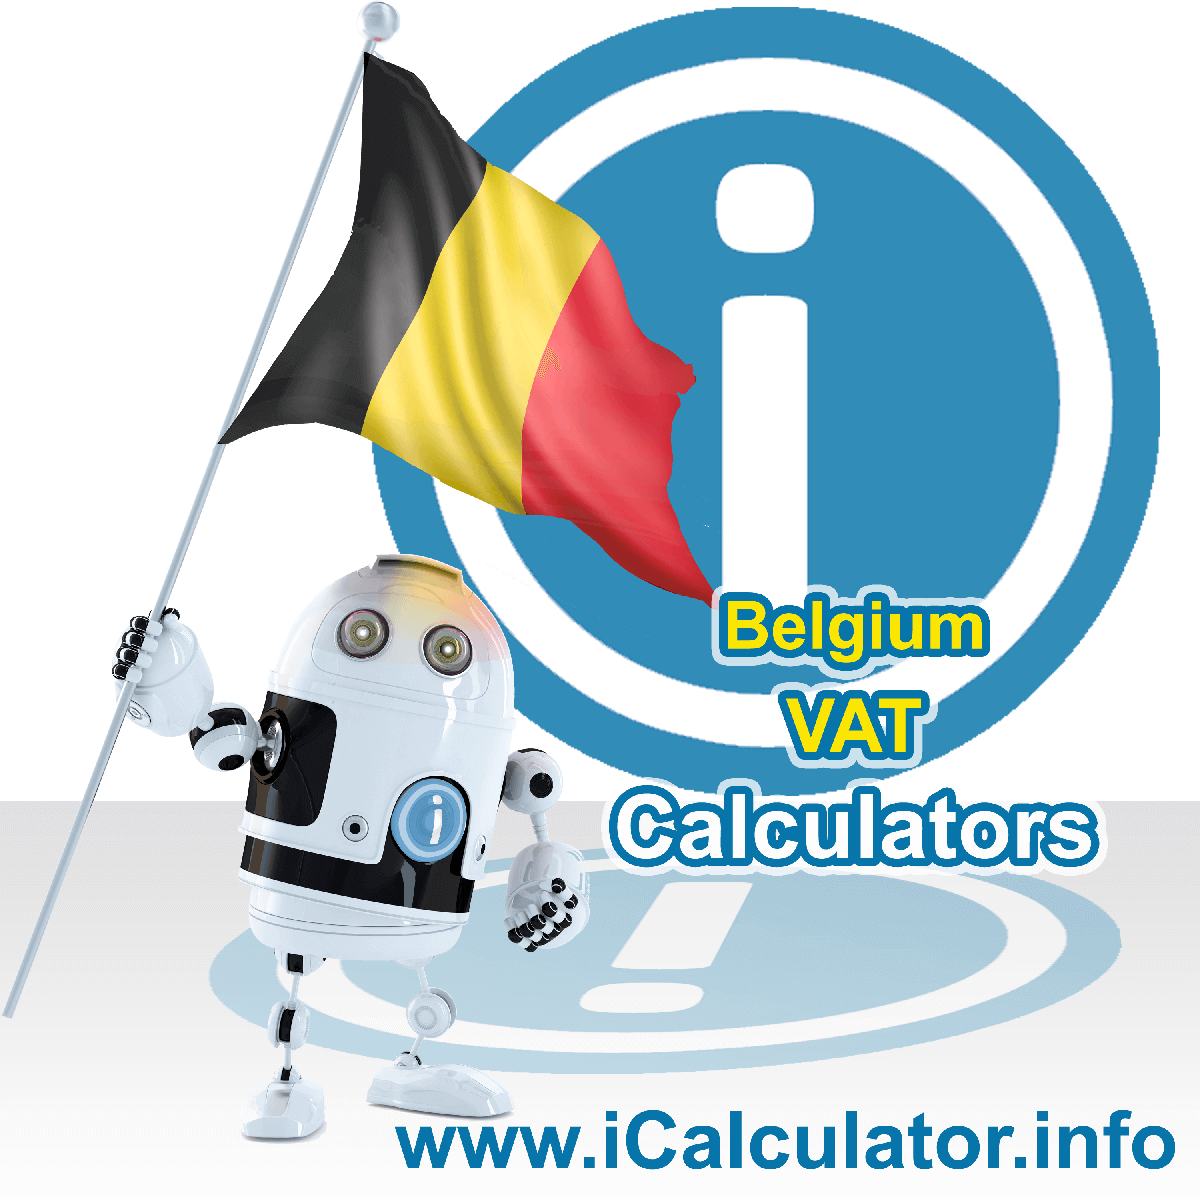 Belgium VAT Calculator. This image shows the Belgium flag and information relating to the VAT formula used for calculating Value Added Tax in Belgium using the Belgium VAT Calculator in 2020